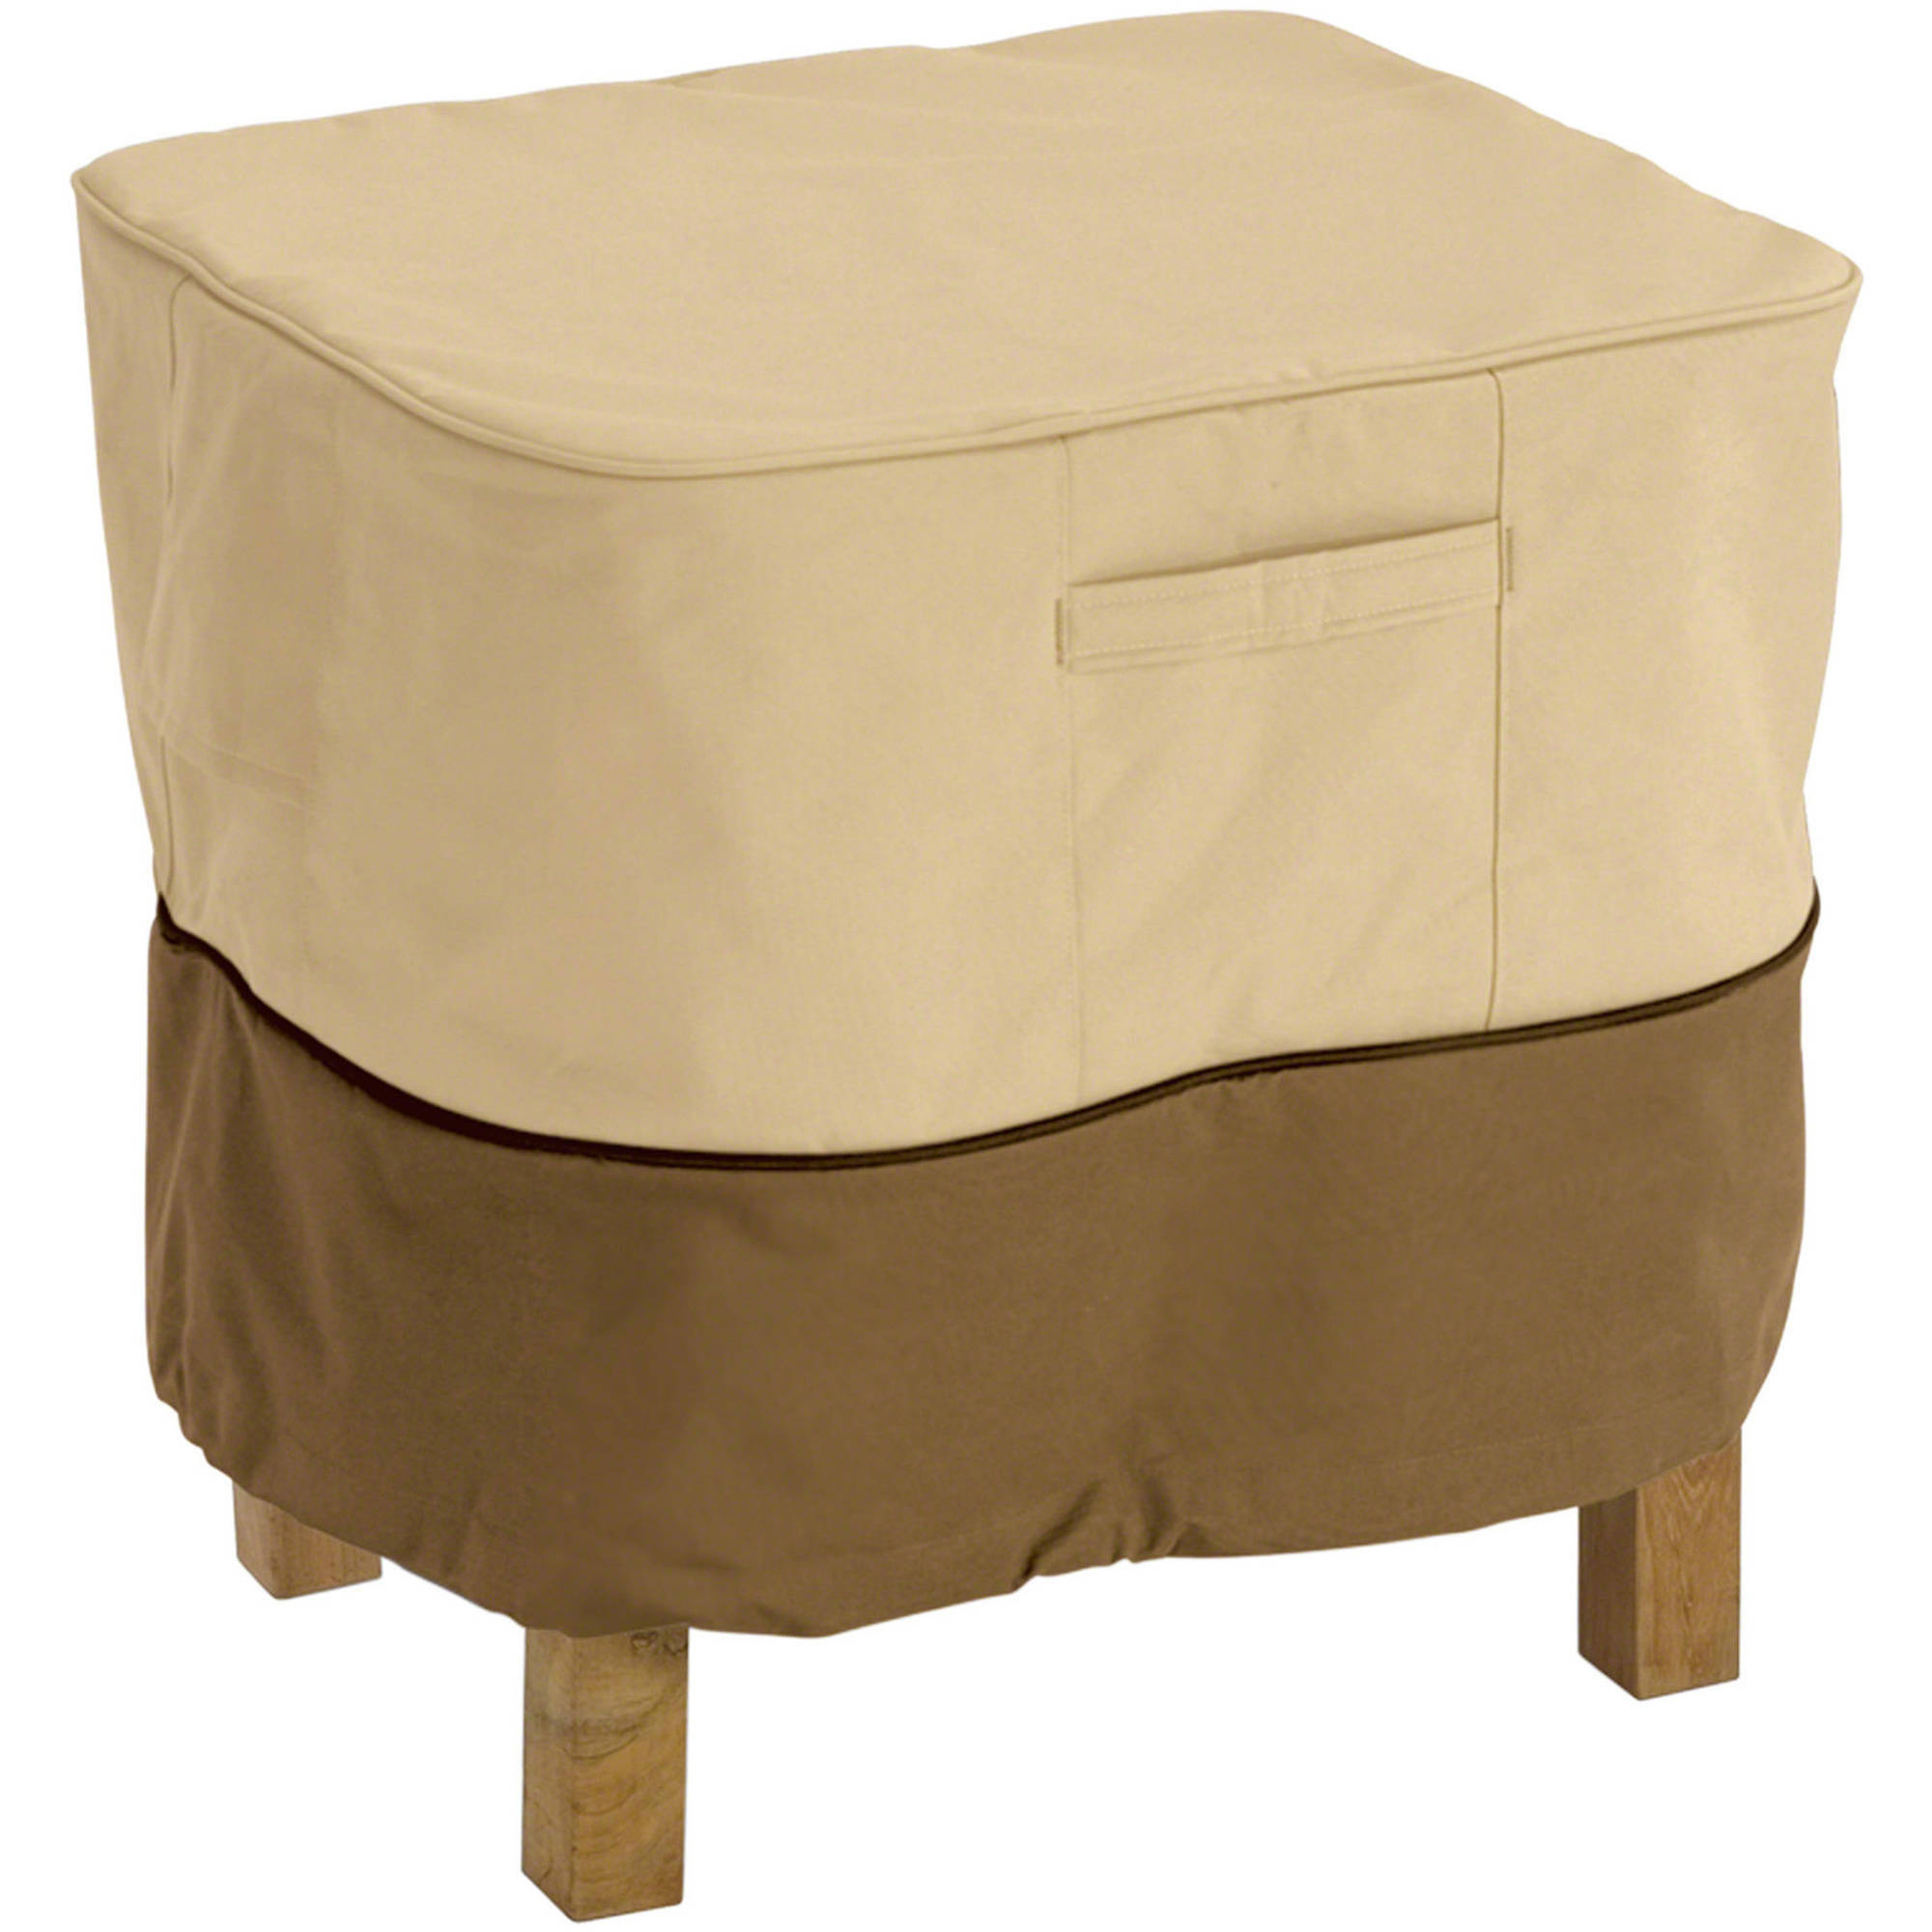 "Classic Accessories Veranda Square Patio Ottoman and Table Furniture Storage Cover, fits up to 26""L x 26""W"